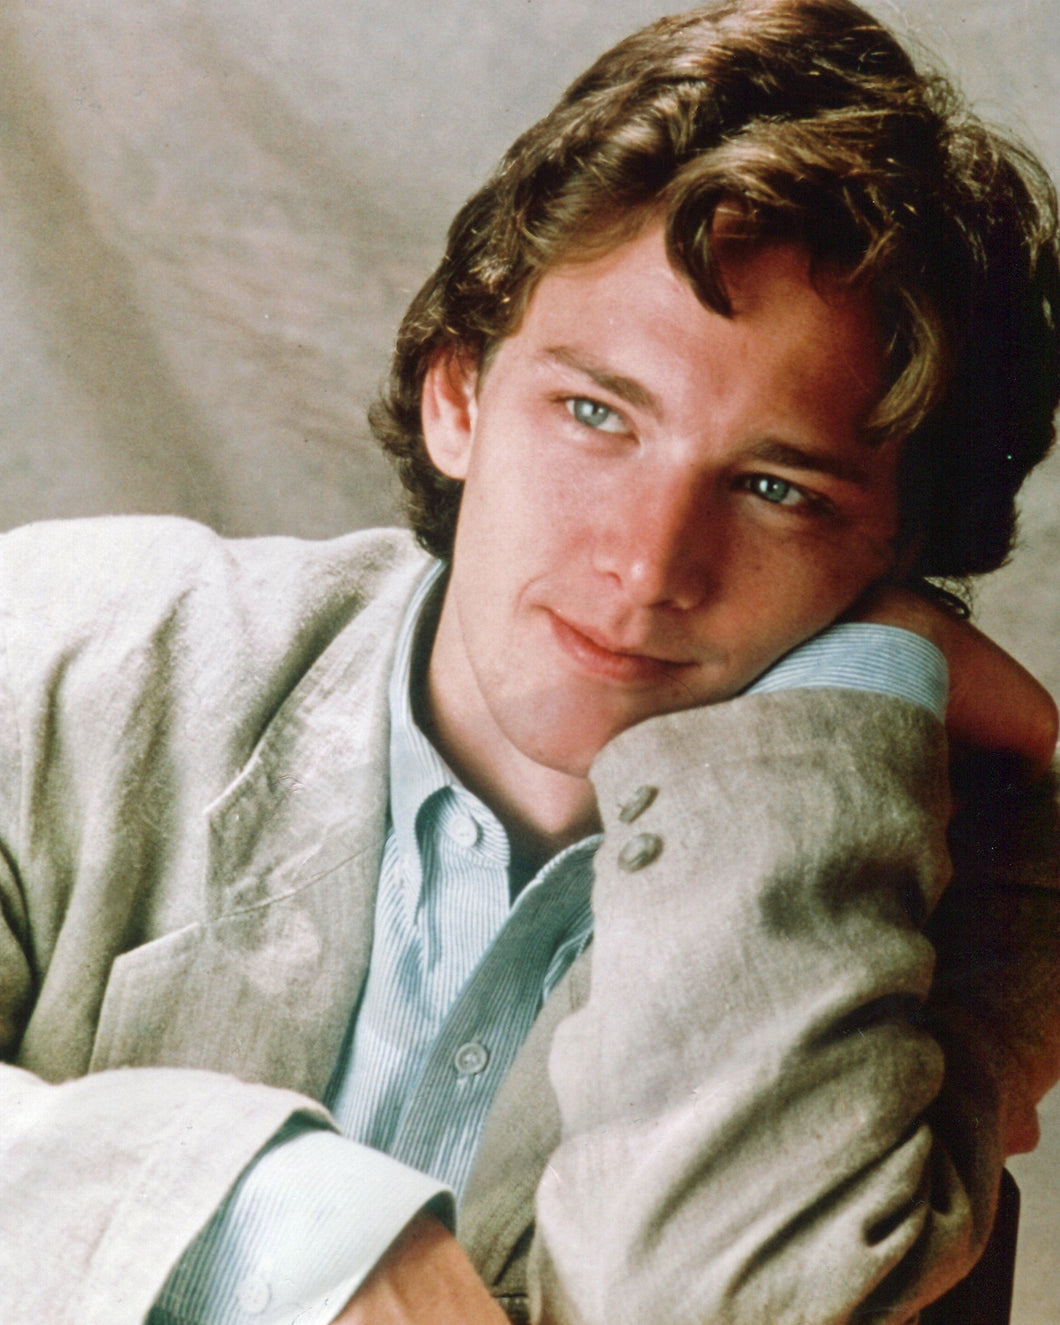 Andrew McCarthy - Signed Pretty in Pink Image #1 (8x10, 11x14)